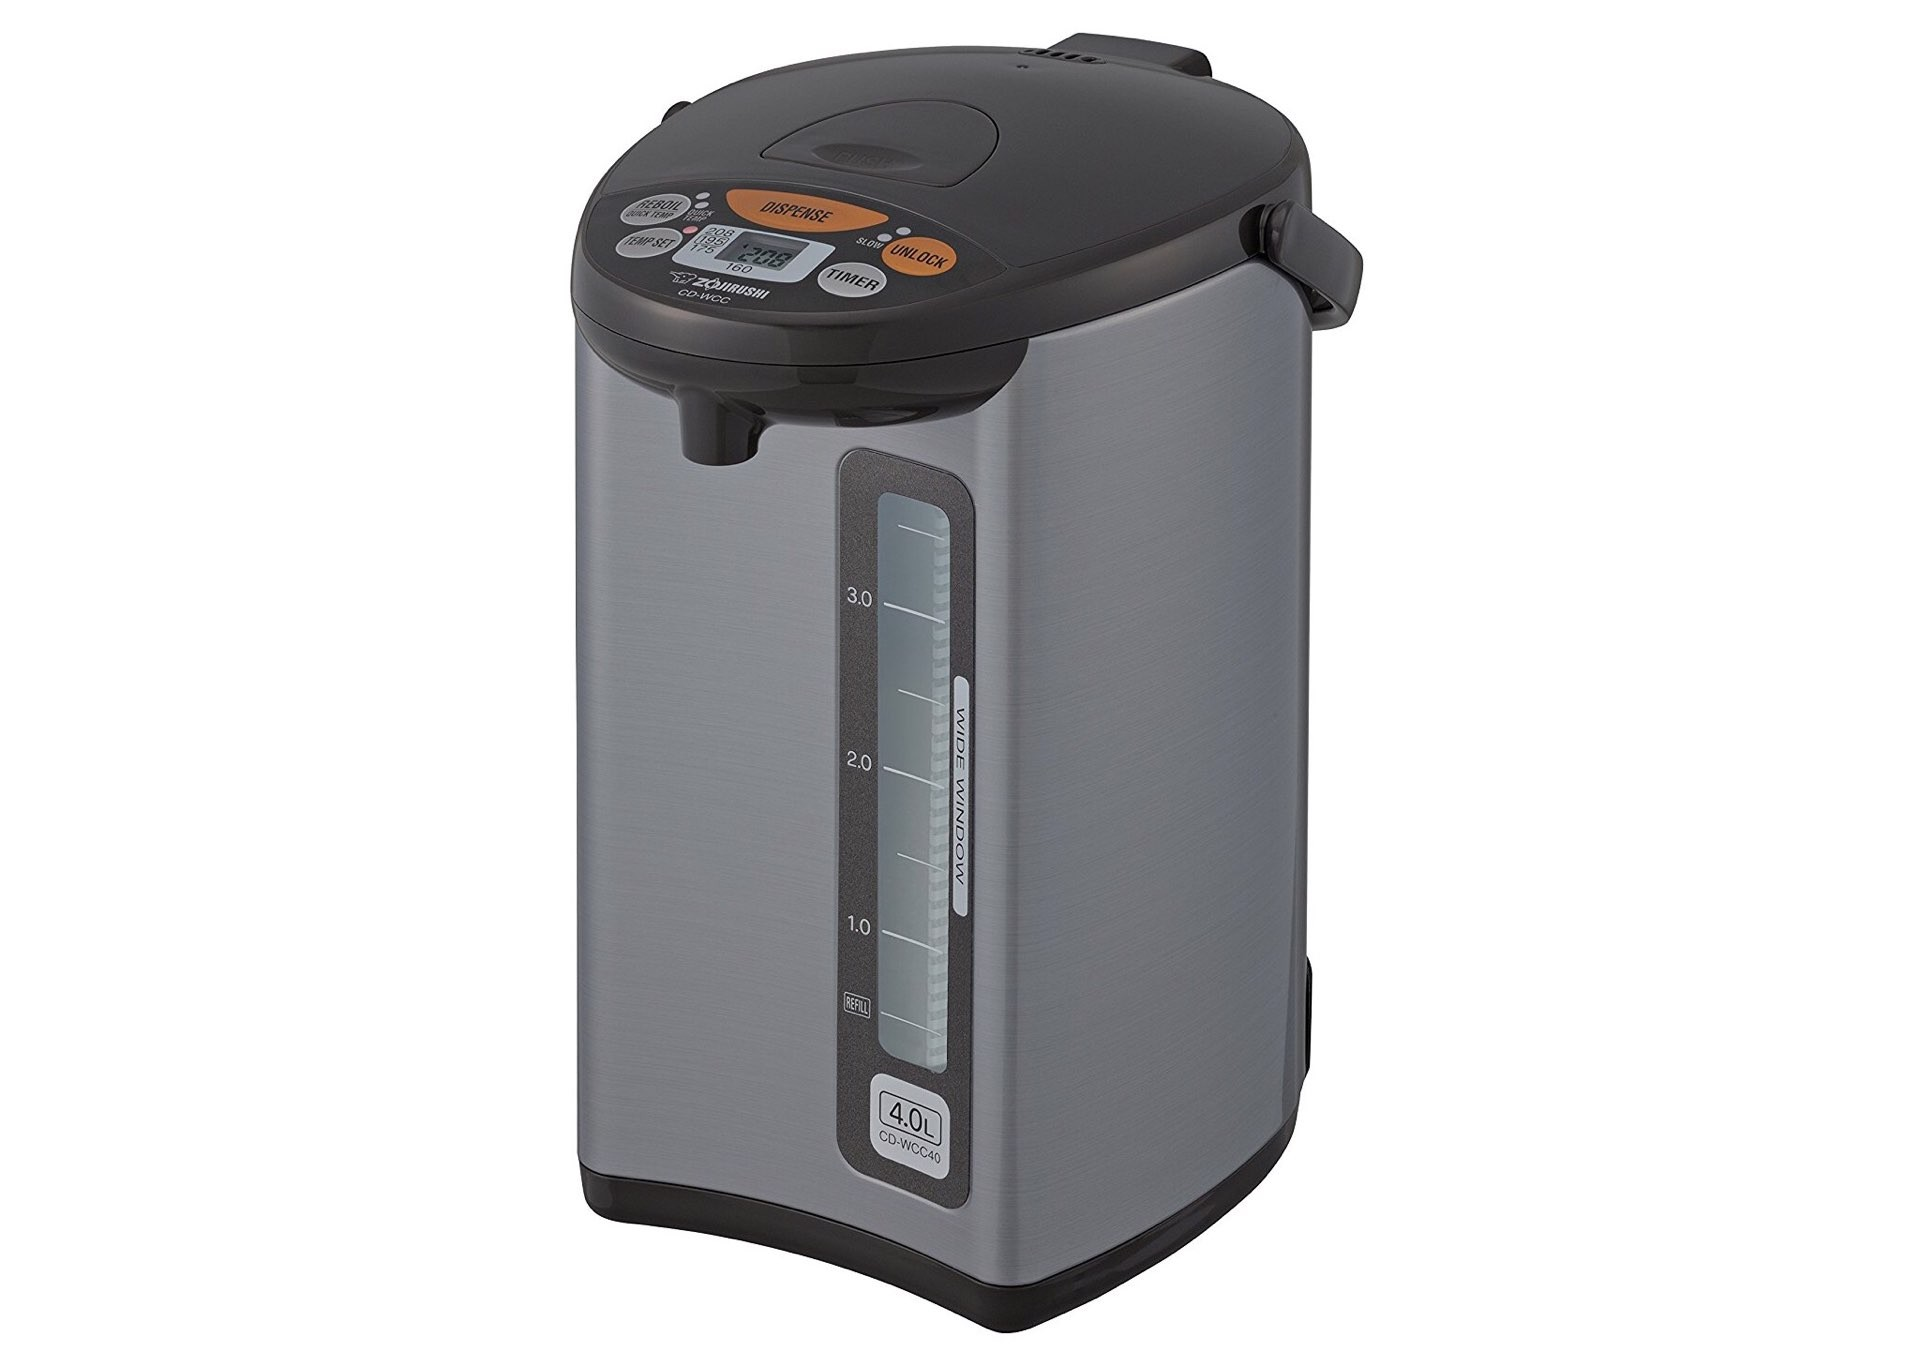 zojirushi-cd-wcc40-micom-water-boiler-warmer